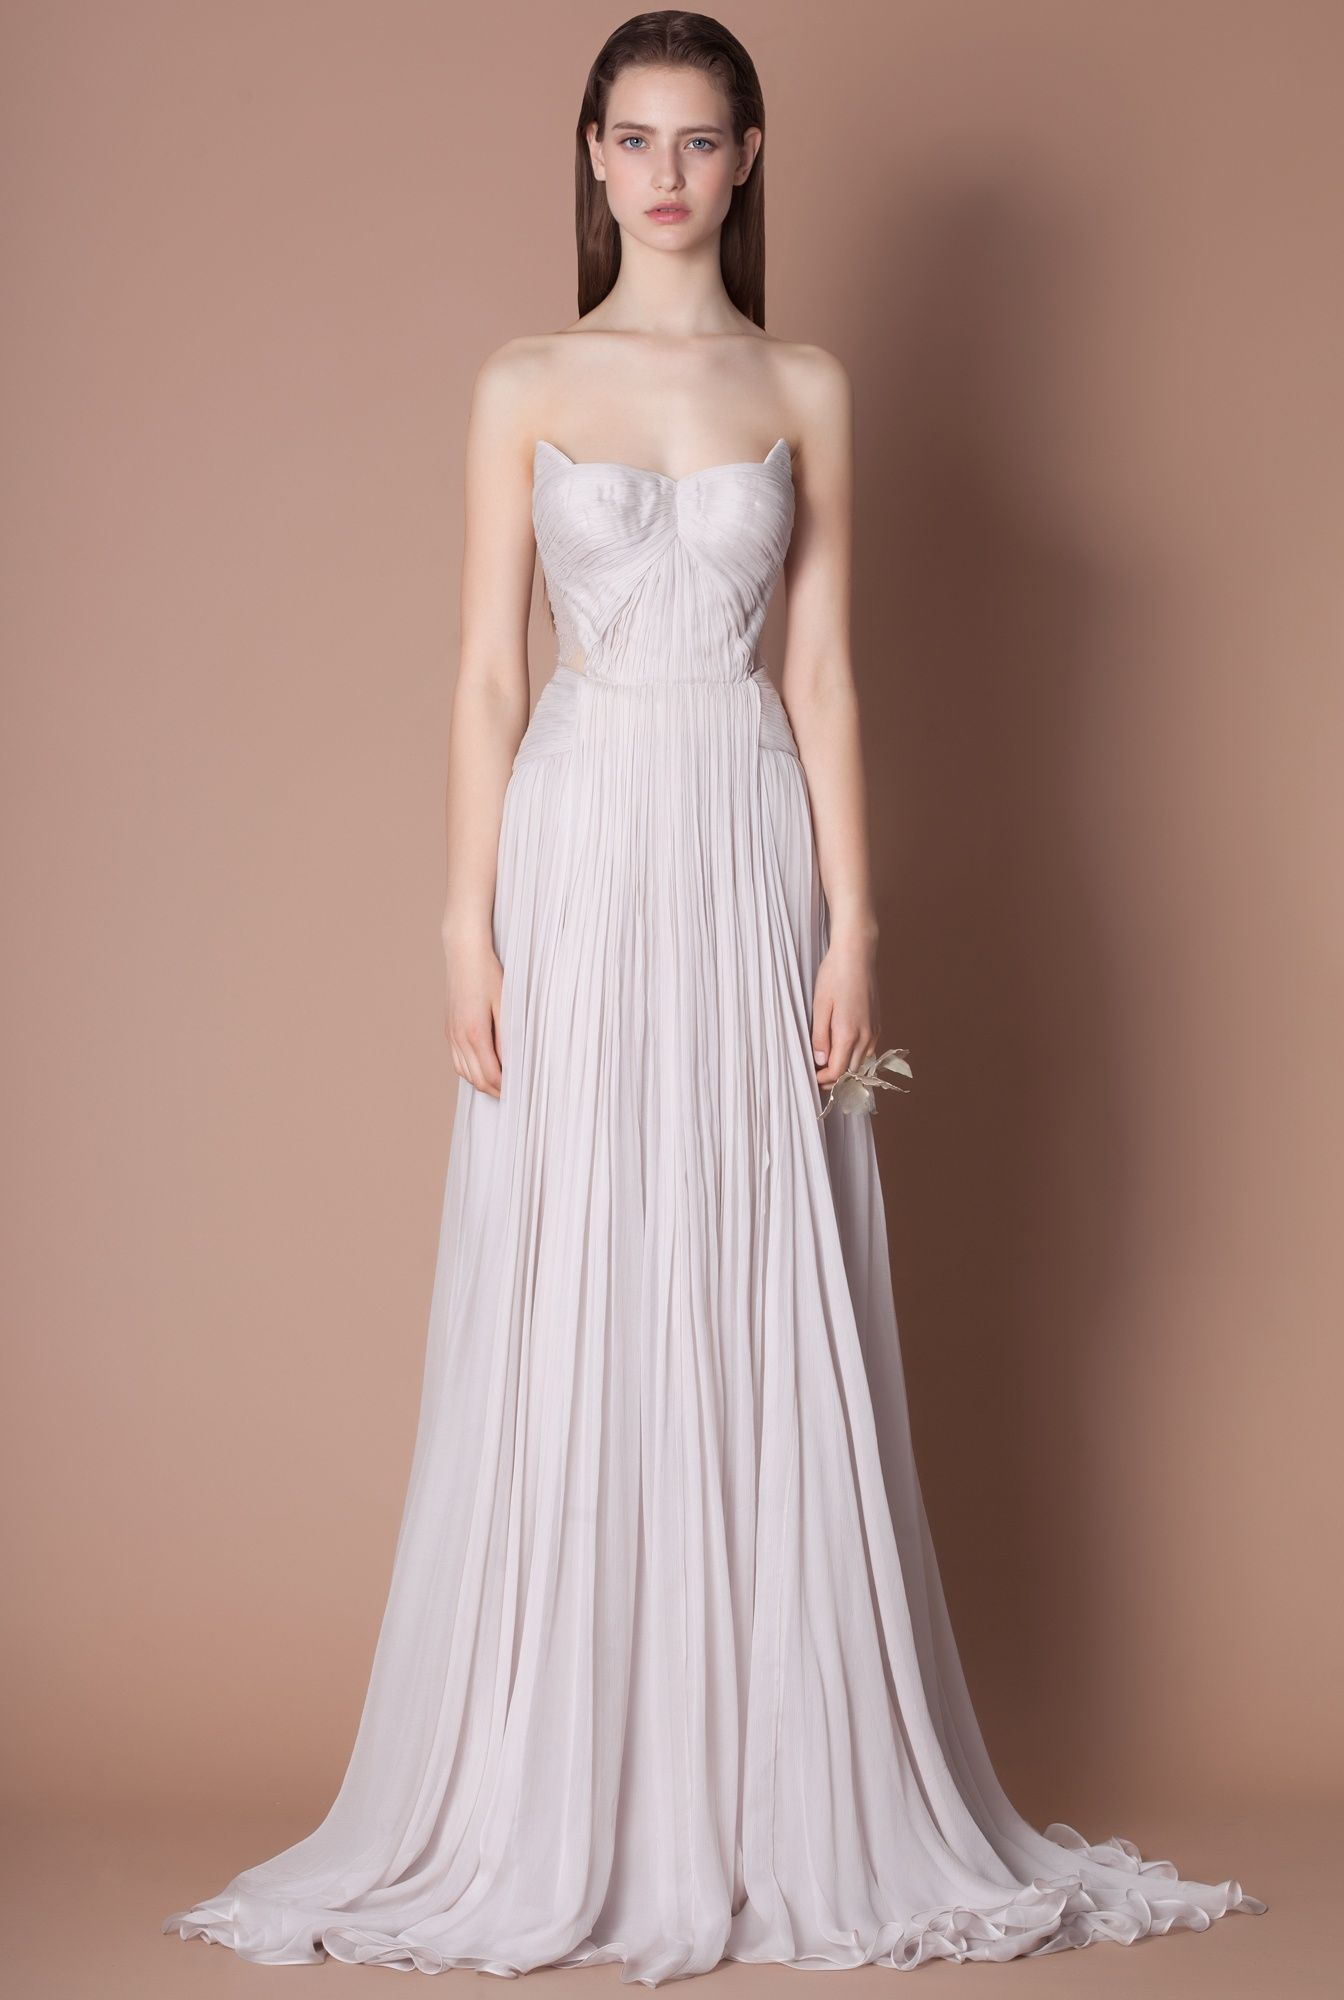 603677a42537 Click here to buy Maria Lucia Hohan CAT dress at MLH-SHOP.COM ...